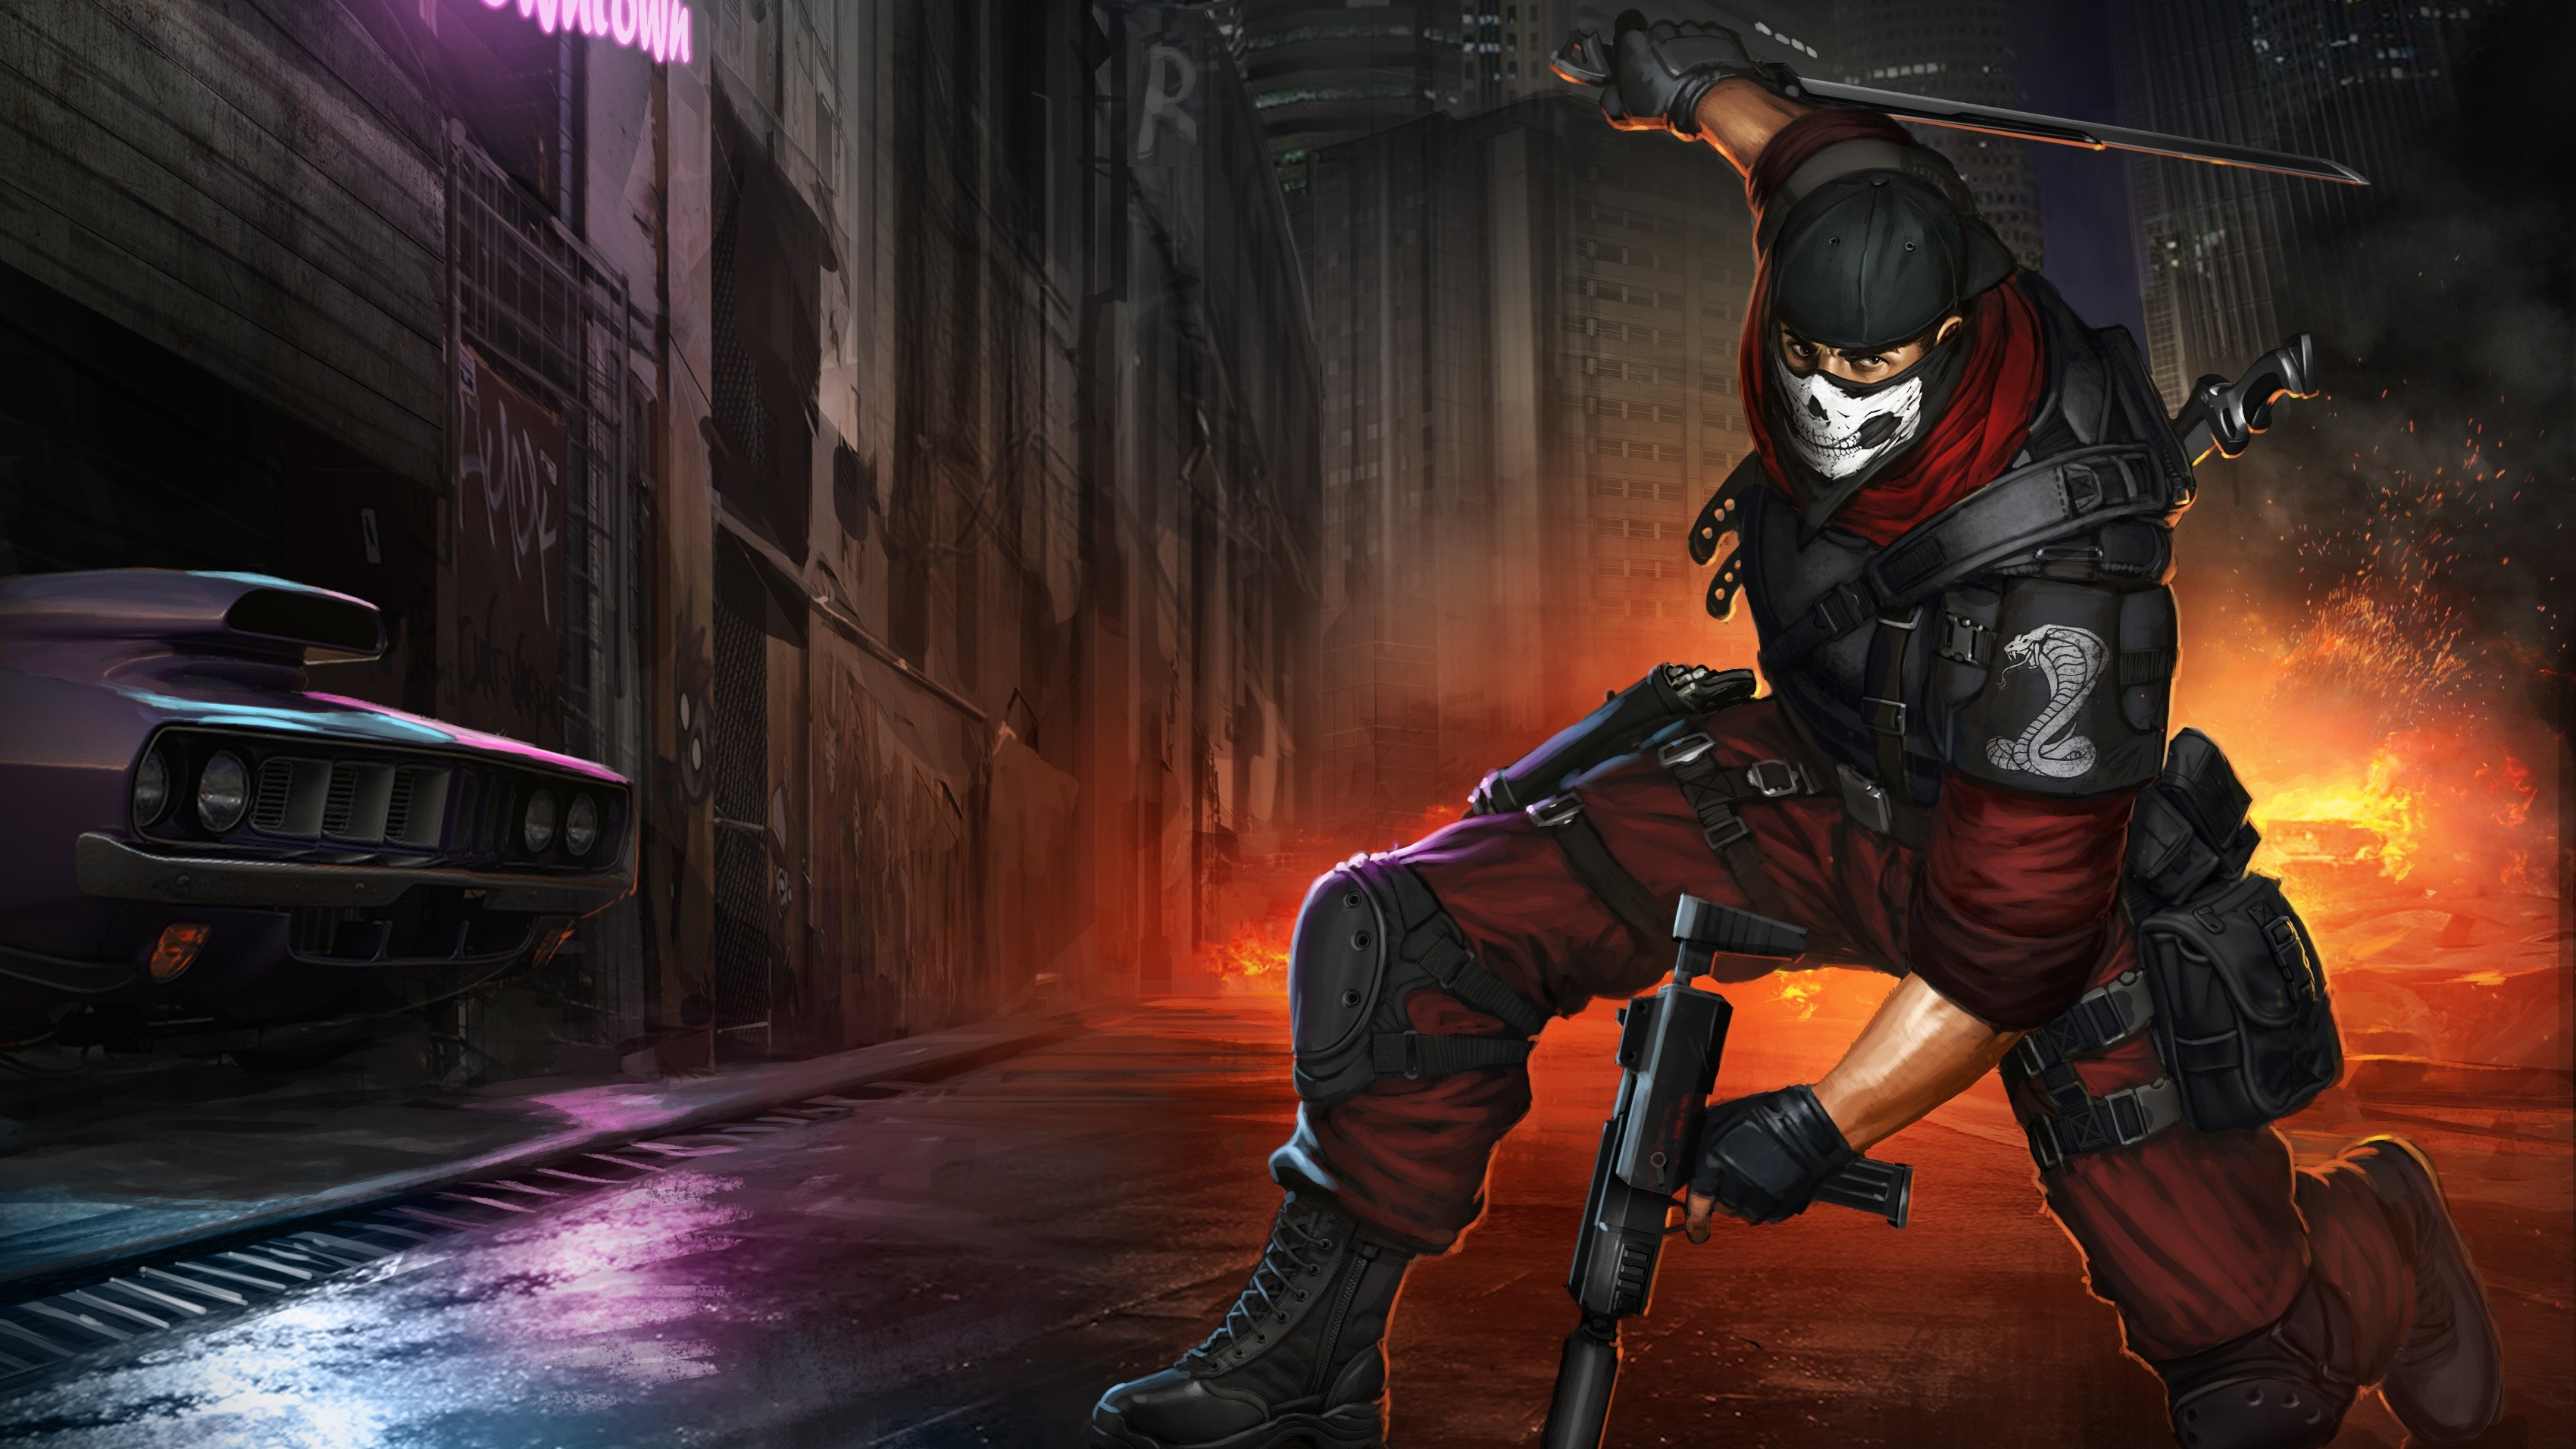 Fantasy Art Ninja Mask Wallpapers Hd Desktop And: Cobra: Special Opps Force Full HD Wallpaper And Background